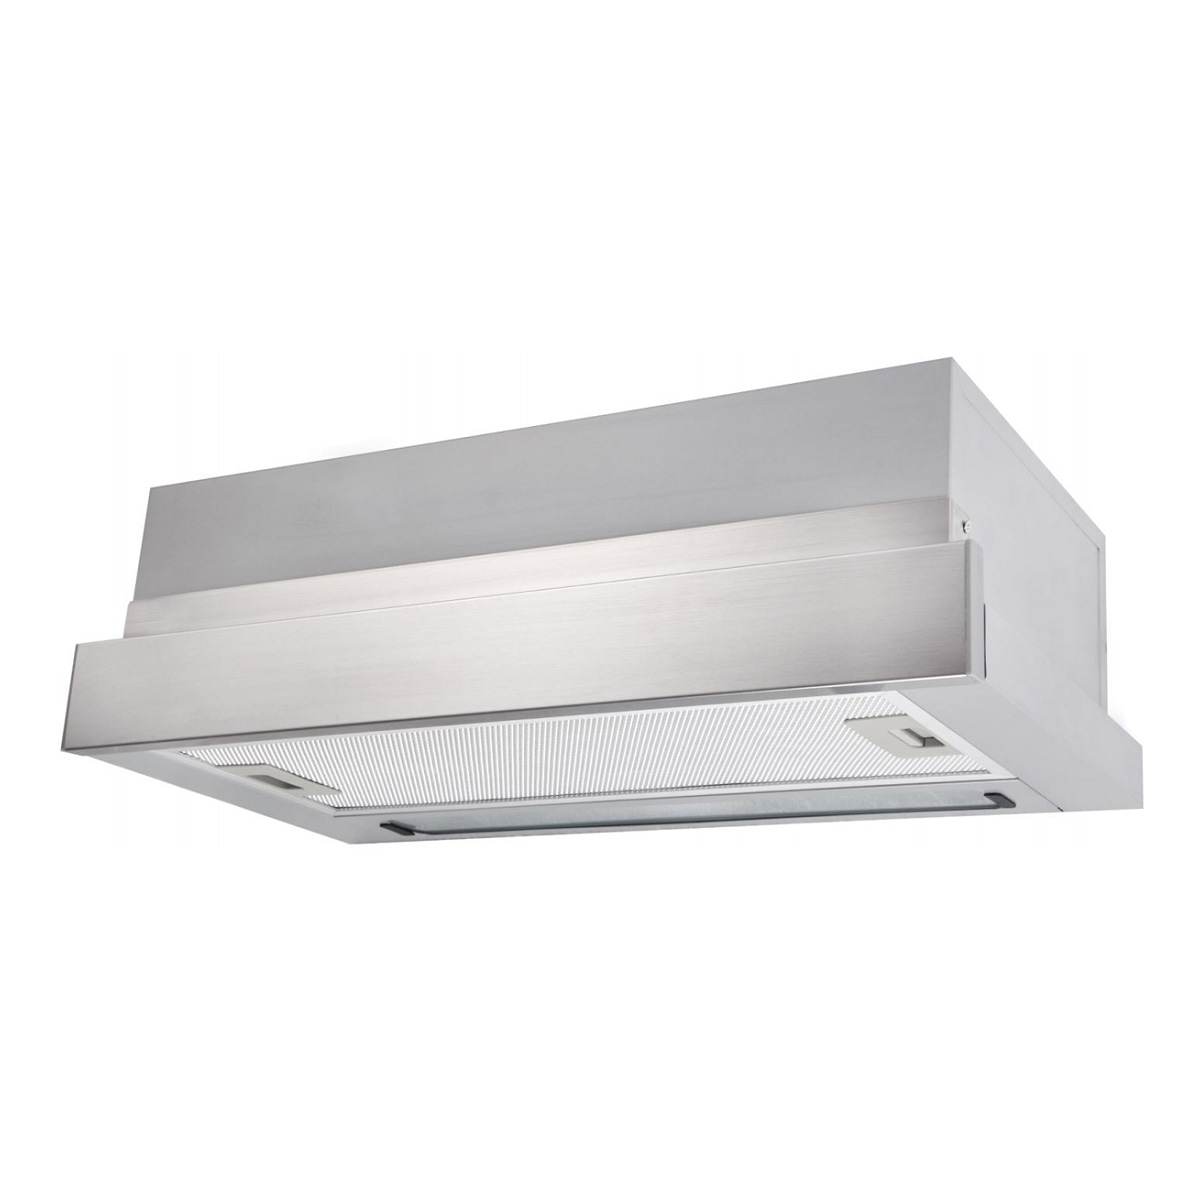 Glem Slide Out Rangehood CK60FRF